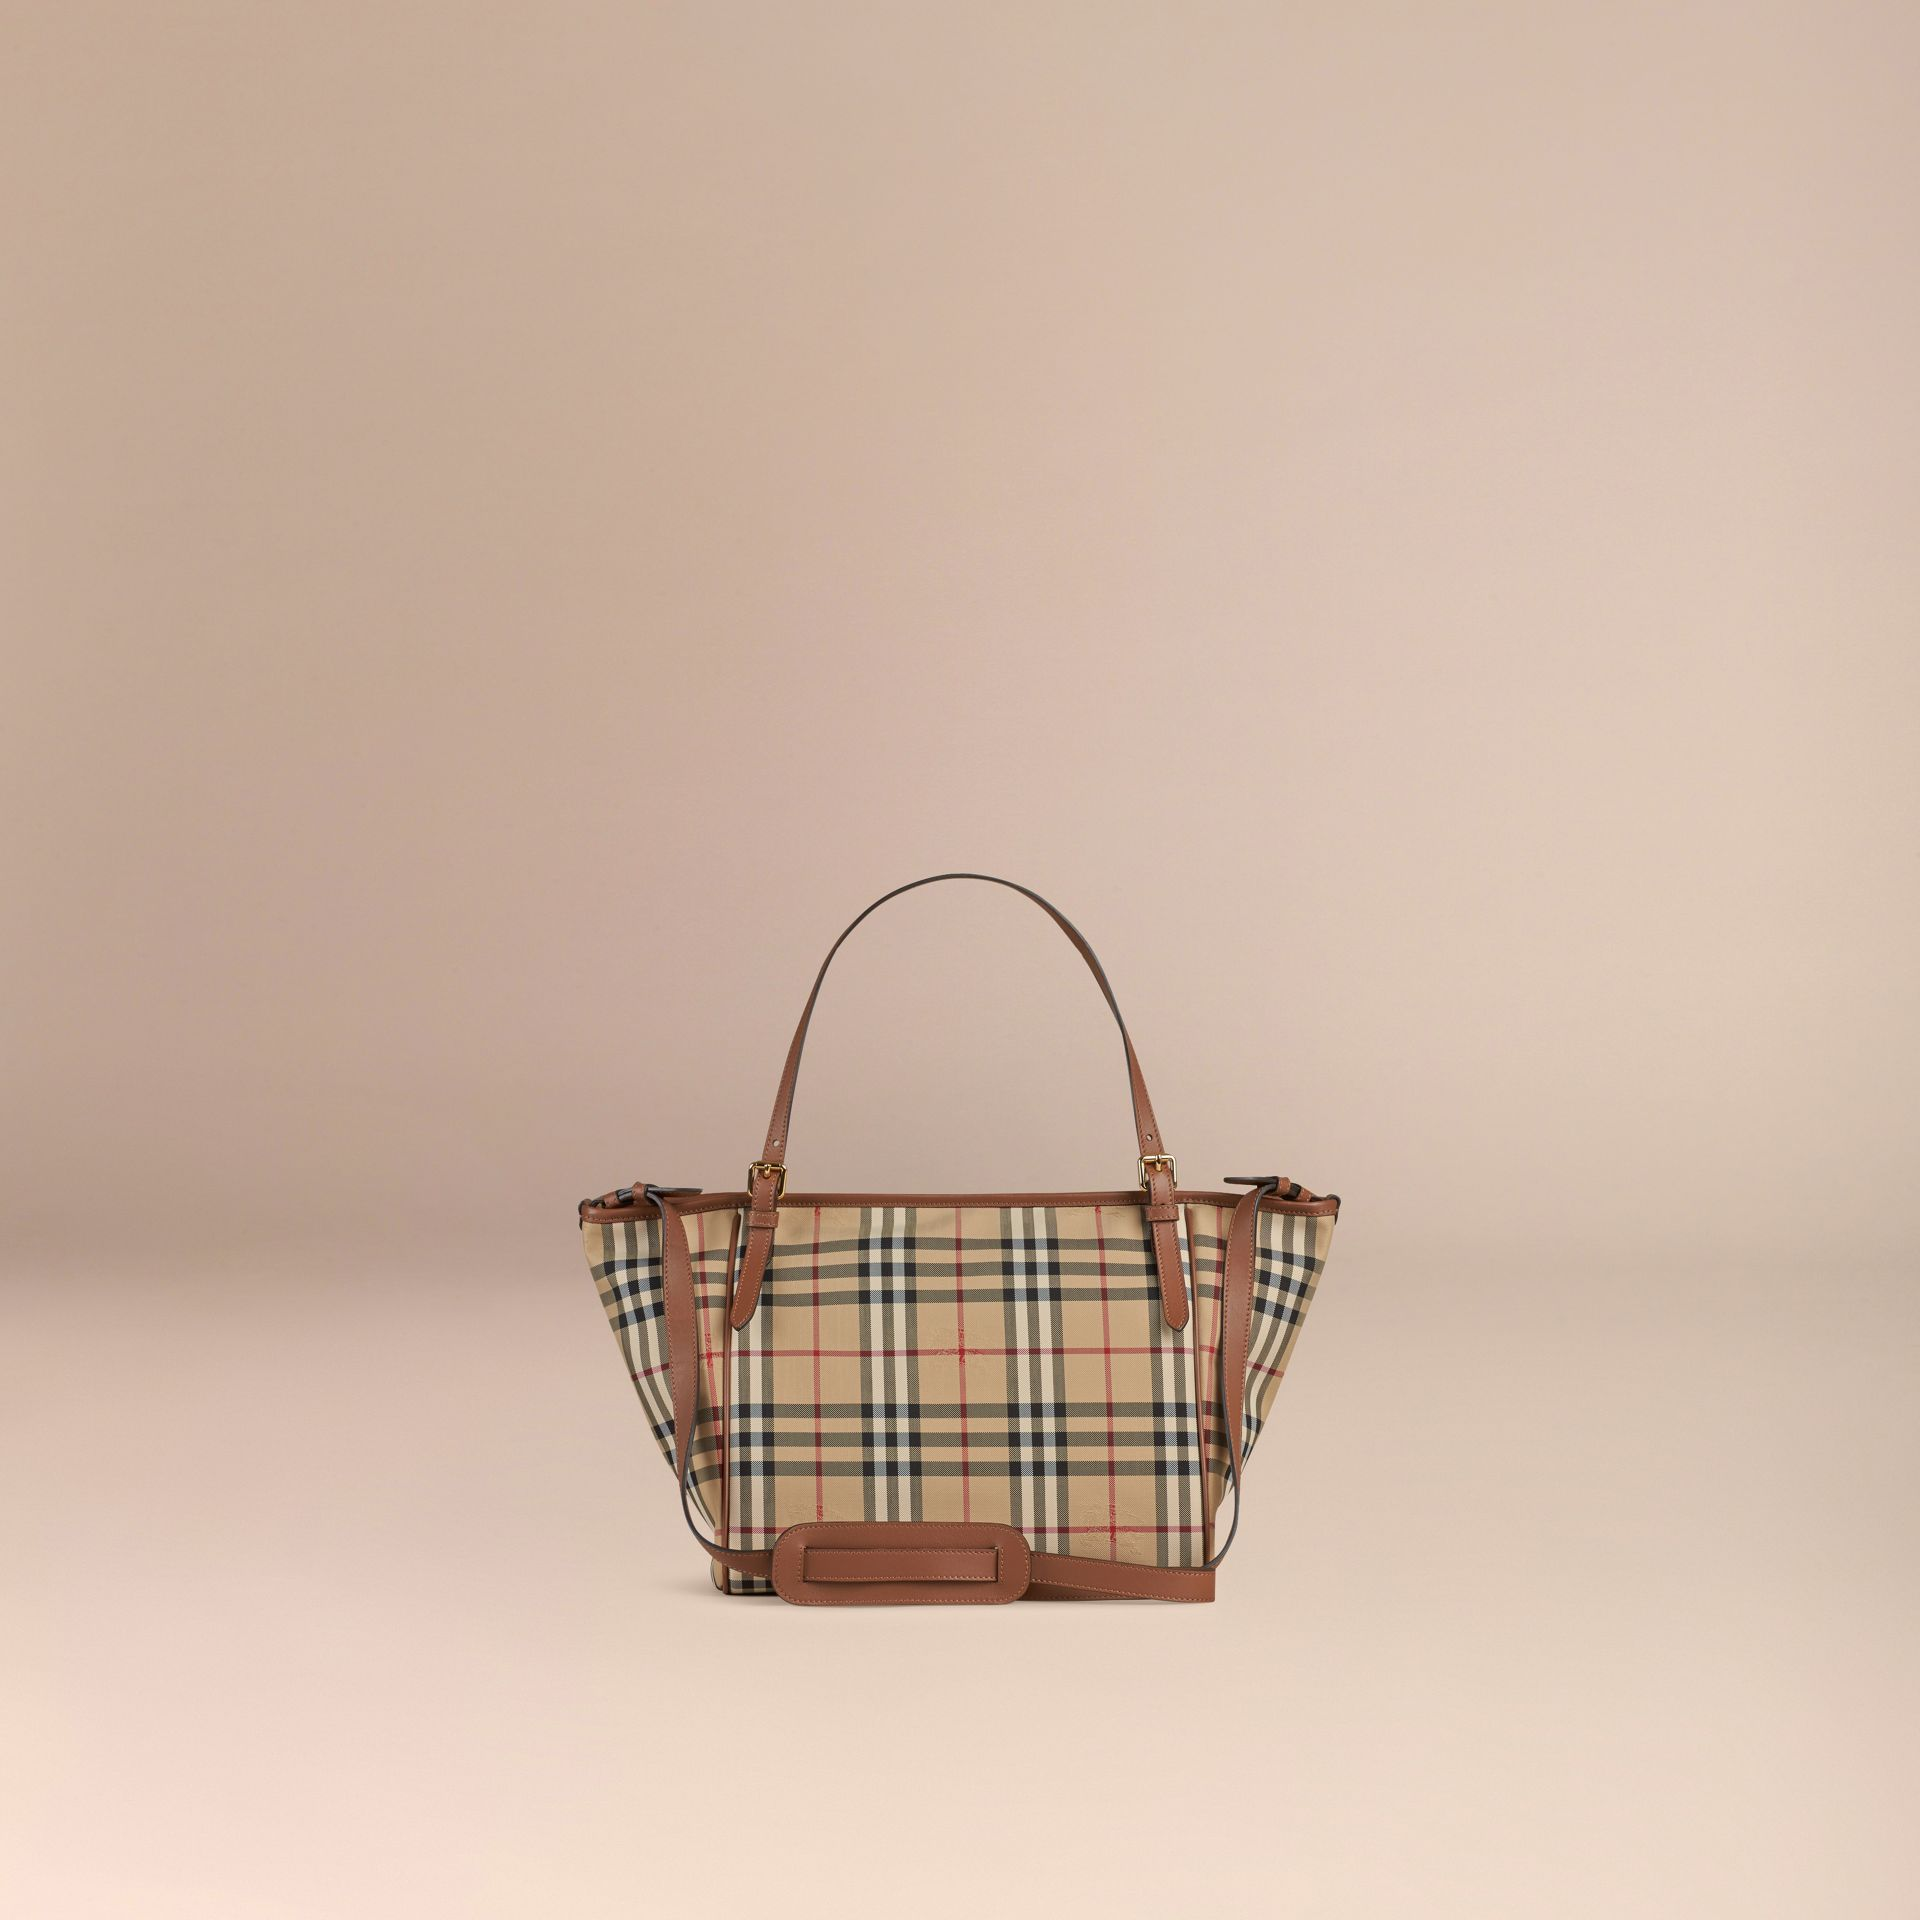 Horseferry Check Baby Changing Tote Bag in Tan | Burberry Canada - gallery image 5